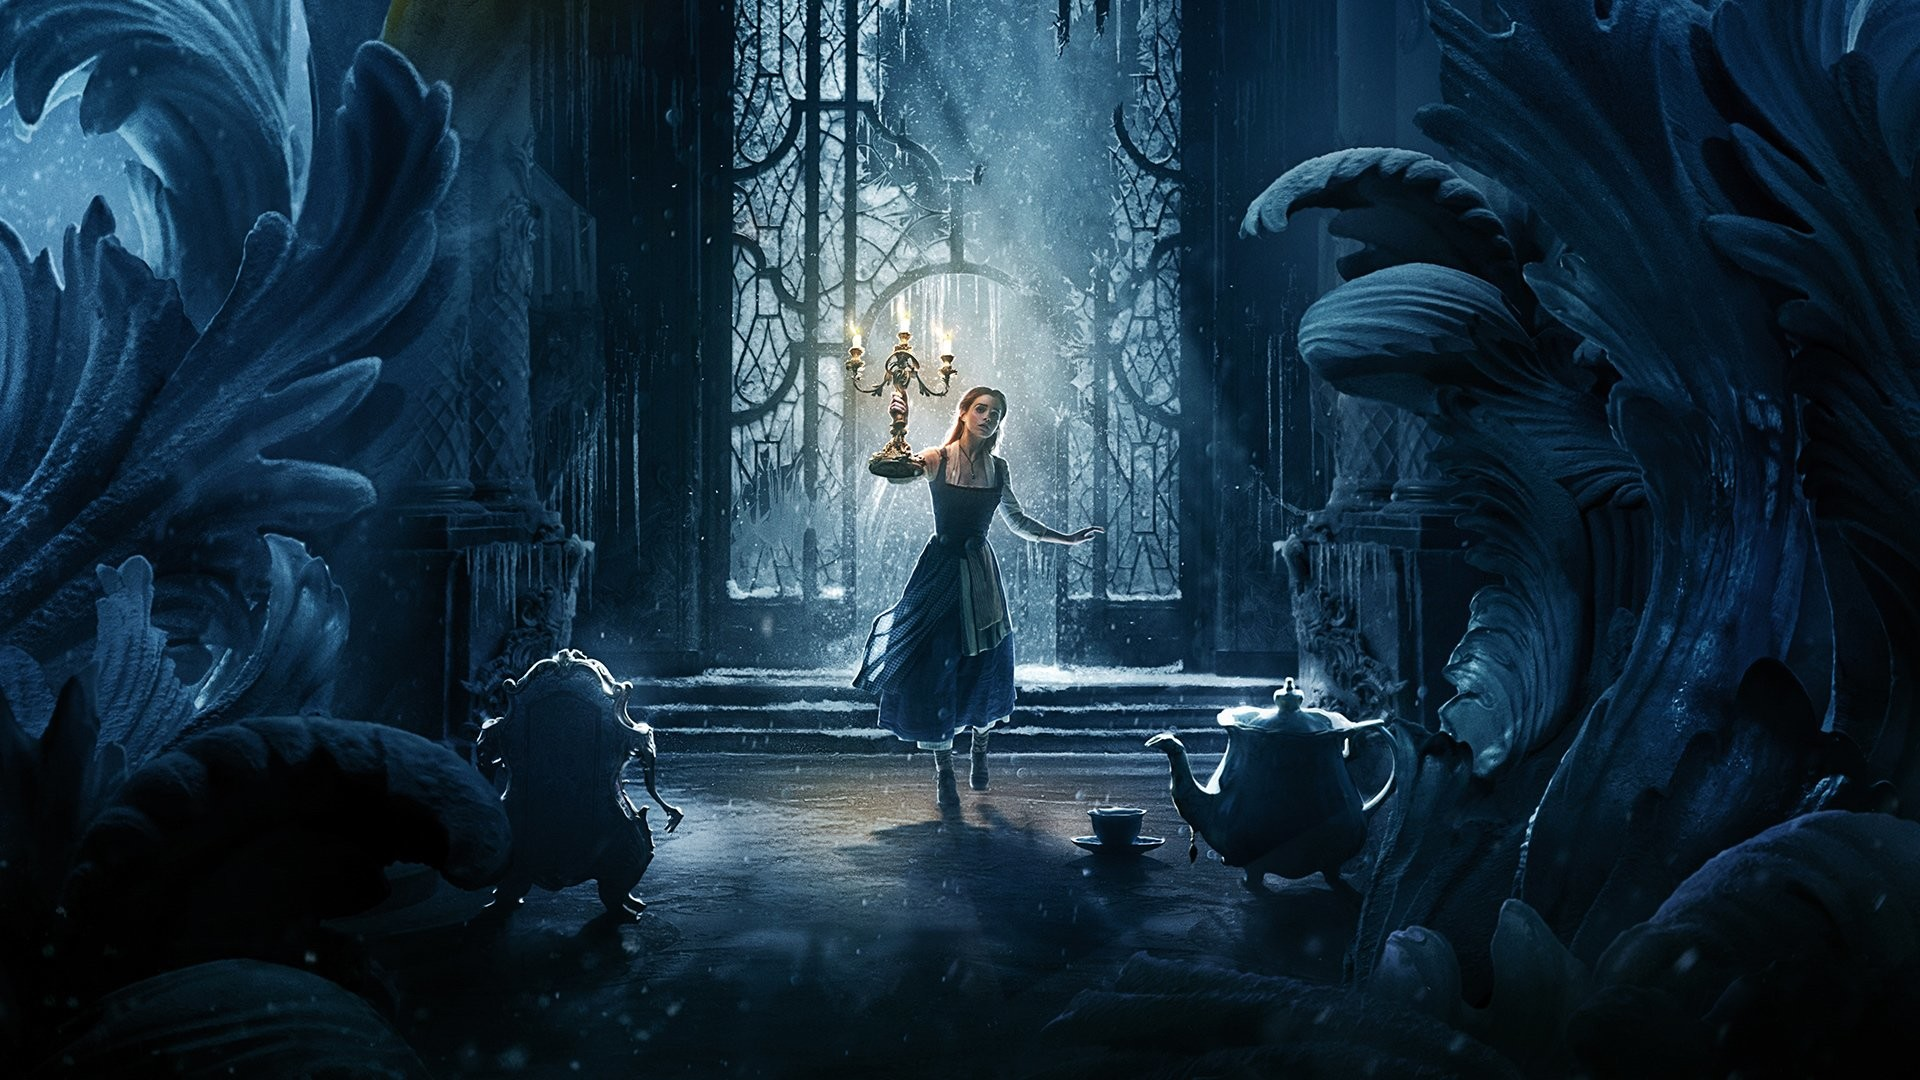 Beauty And The Beast 2018 Hd Wallpapers Wallpapertag